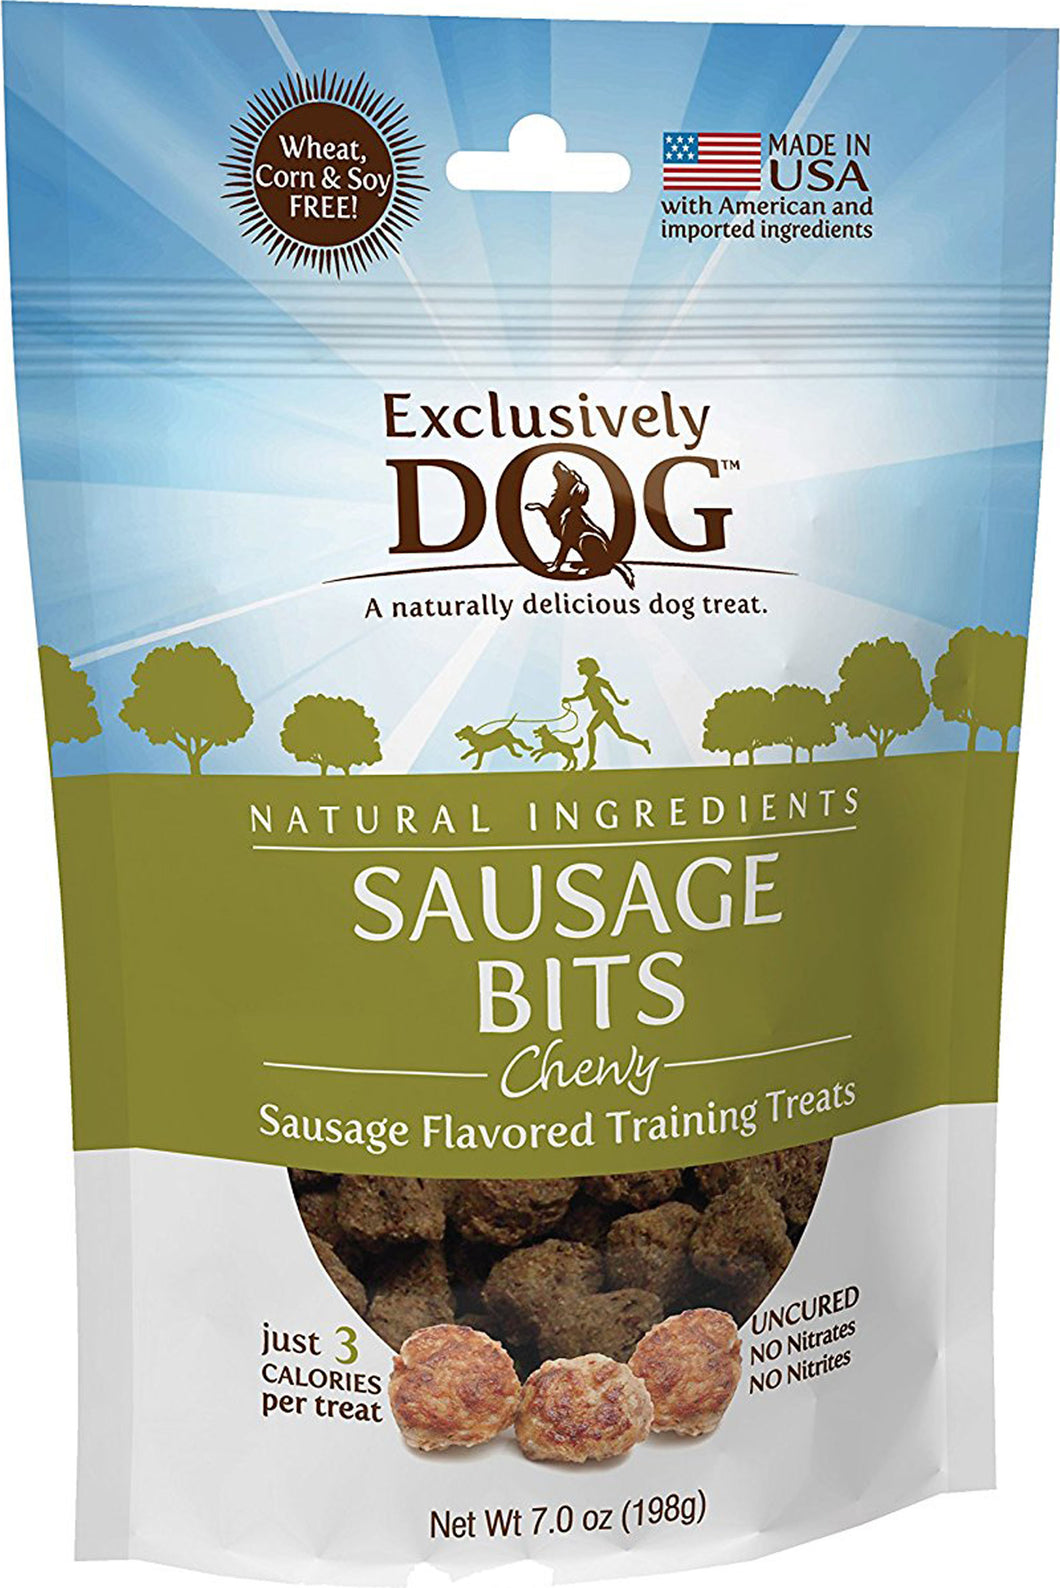 Chewy Sausage Bits Dog Treats